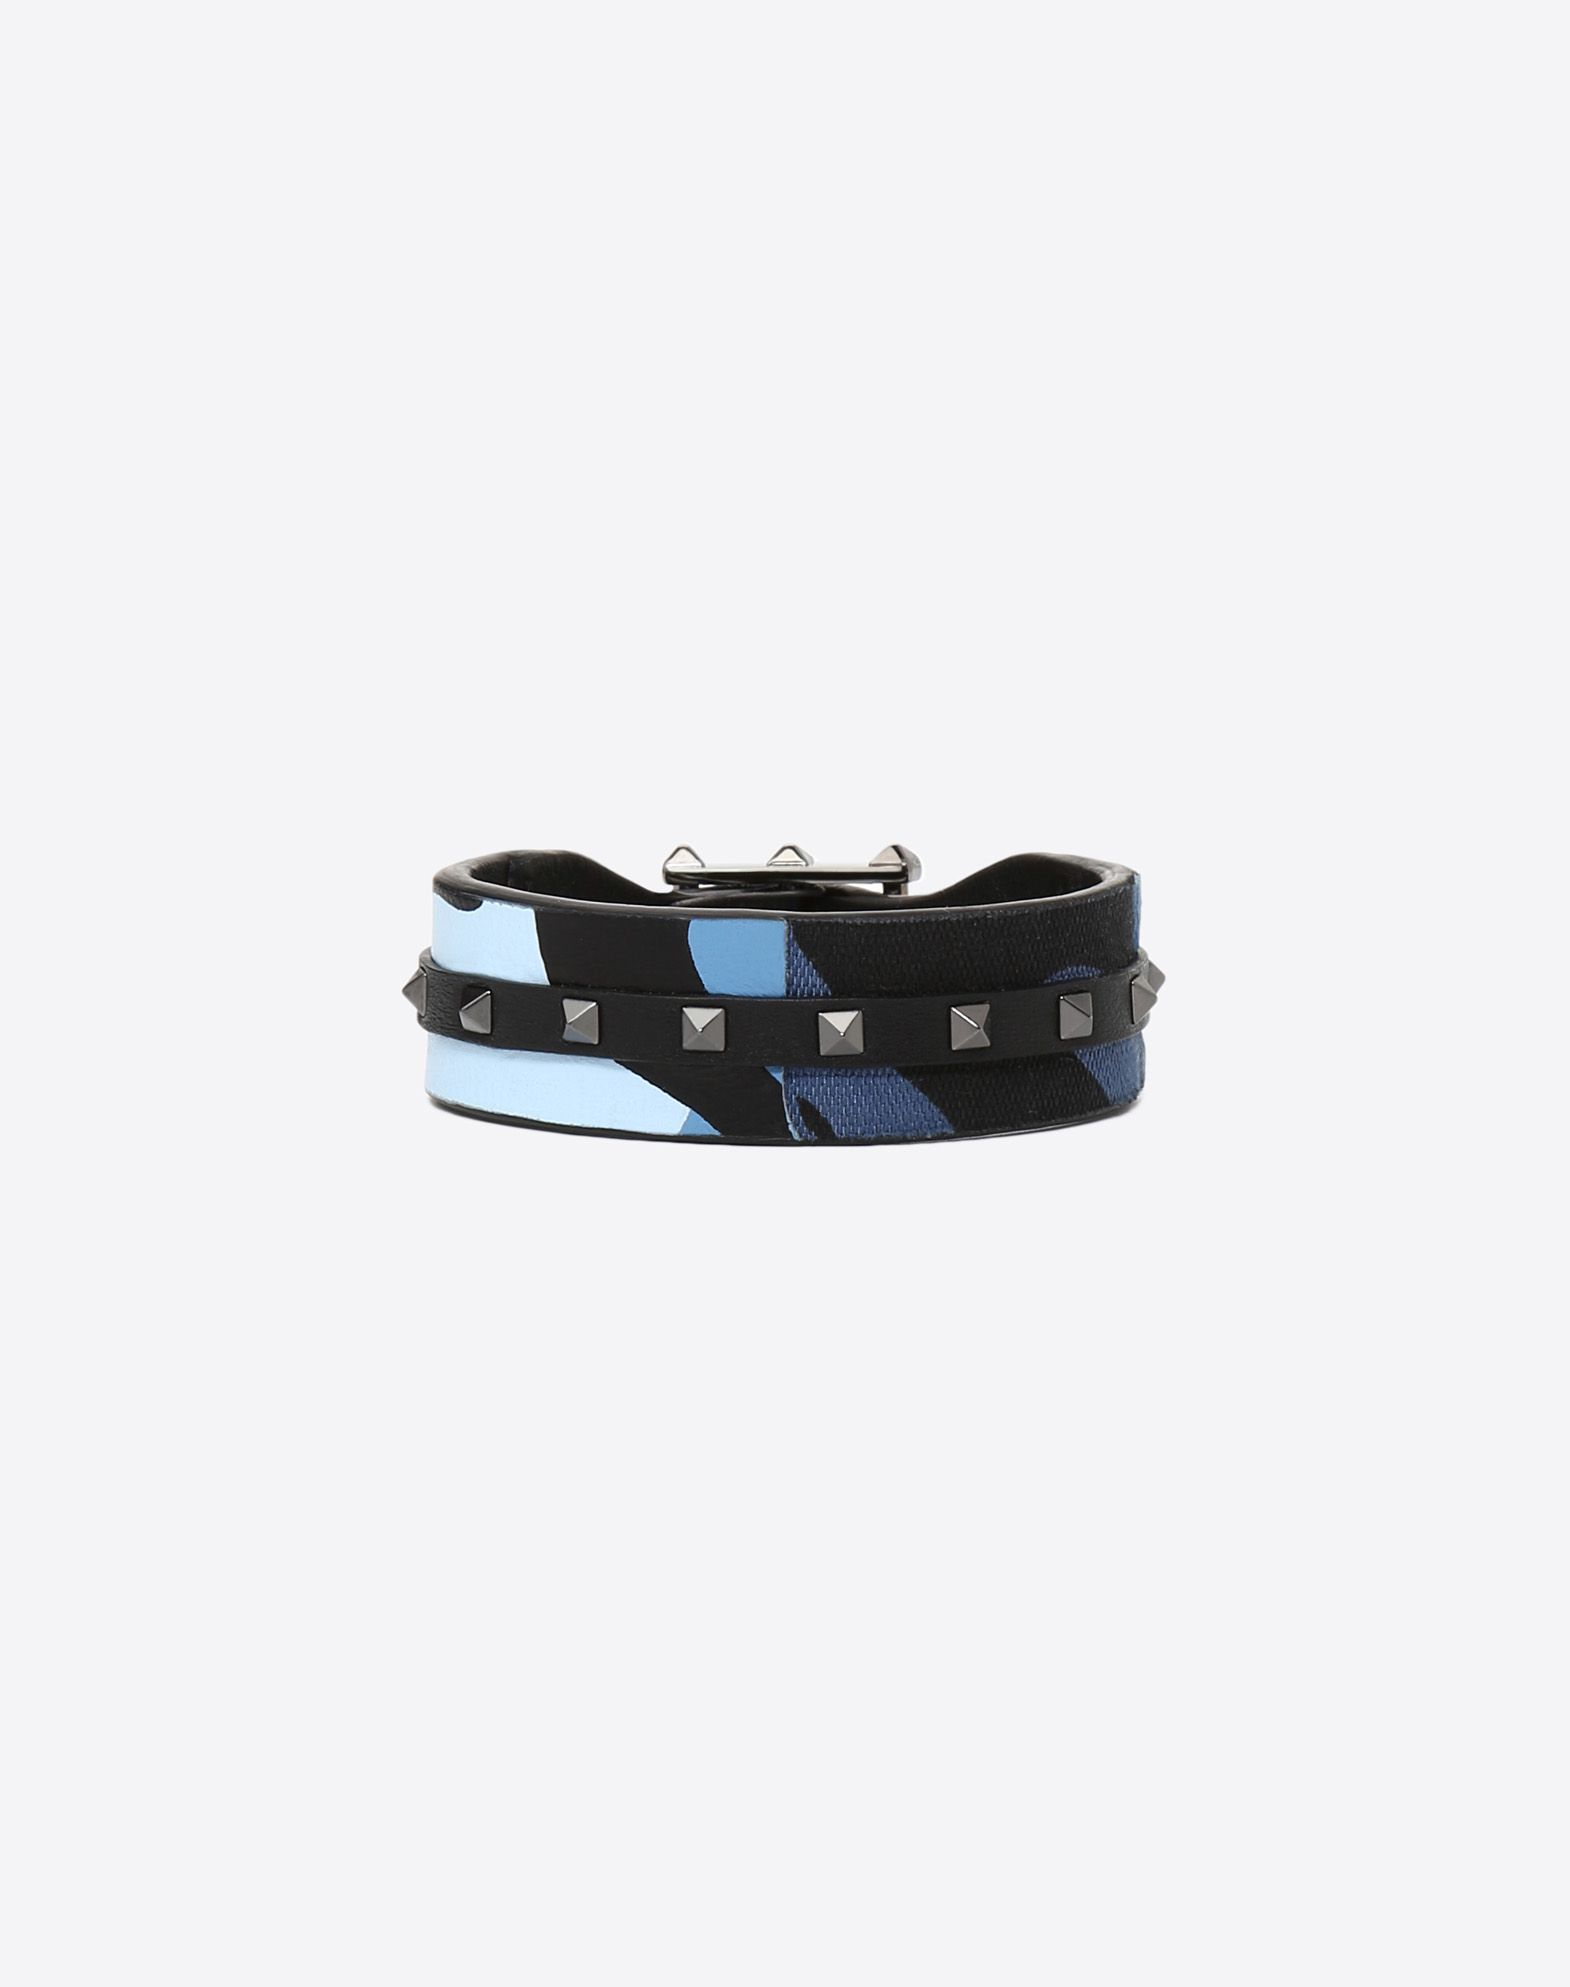 VALENTINO Studs Canvas Buckle Strap material: leather  50212437gq